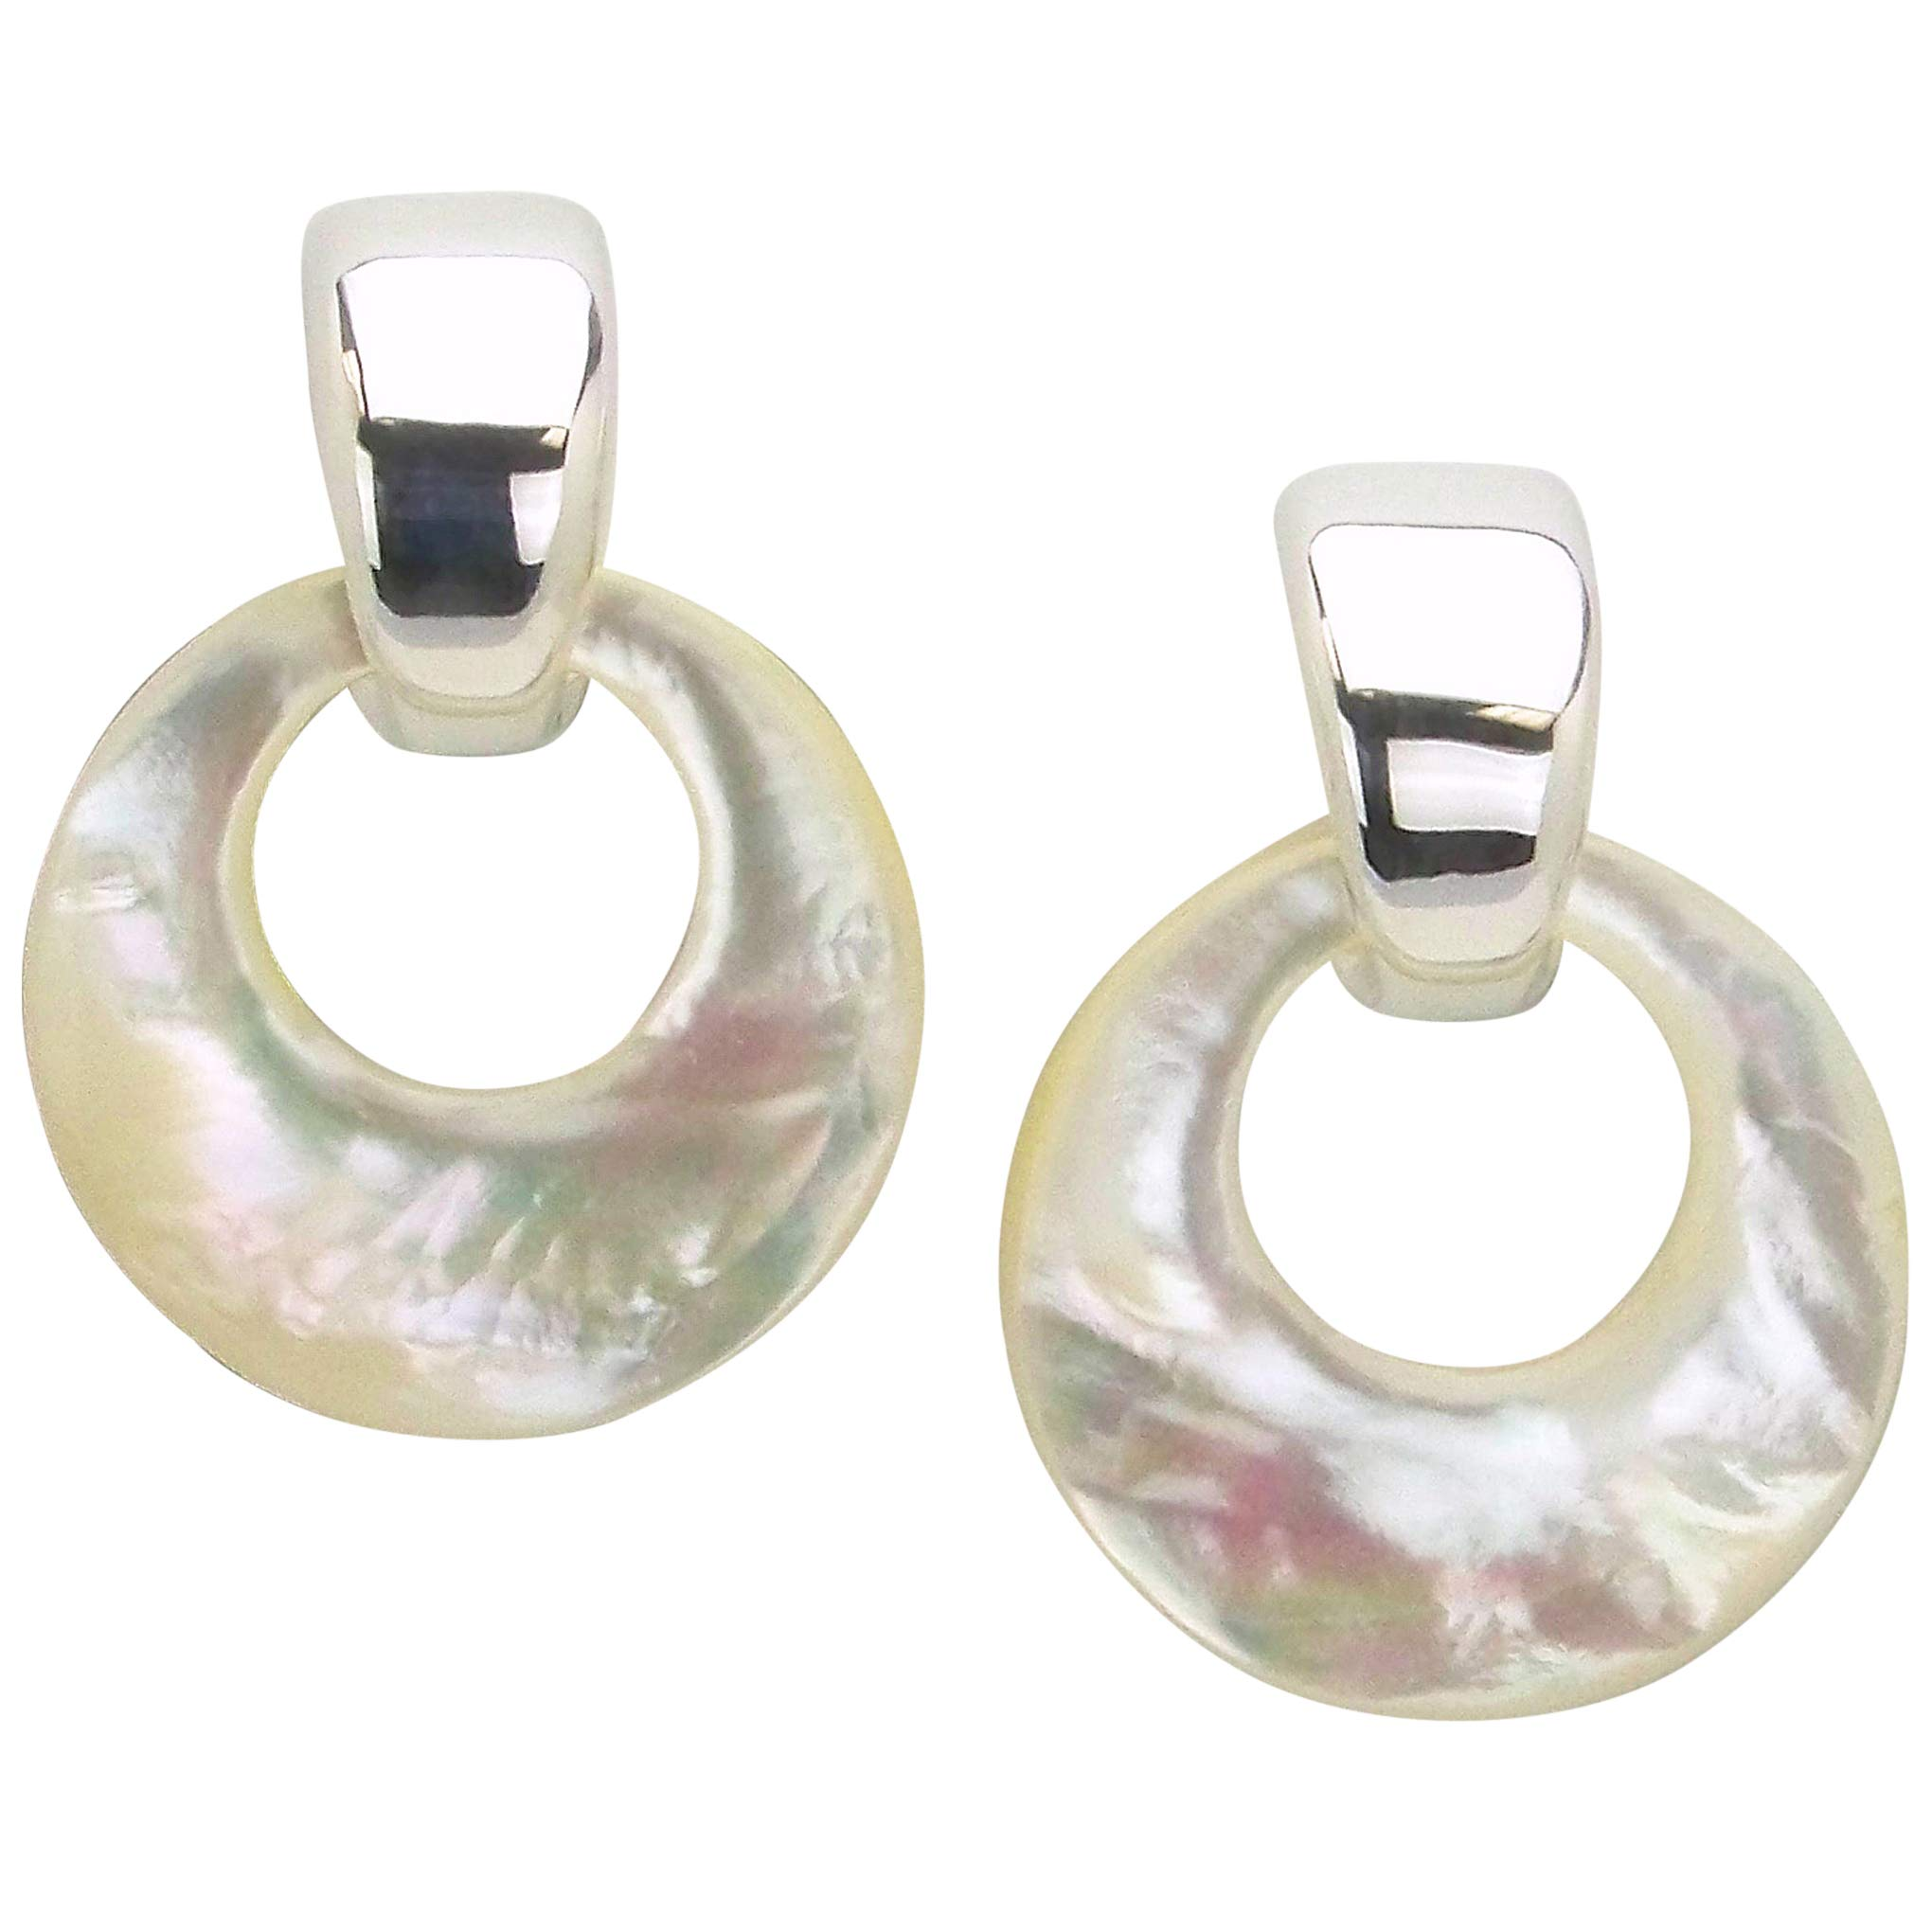 Simon Sebbag Convertible Statement Clip On Earrings in White Shell and Silver